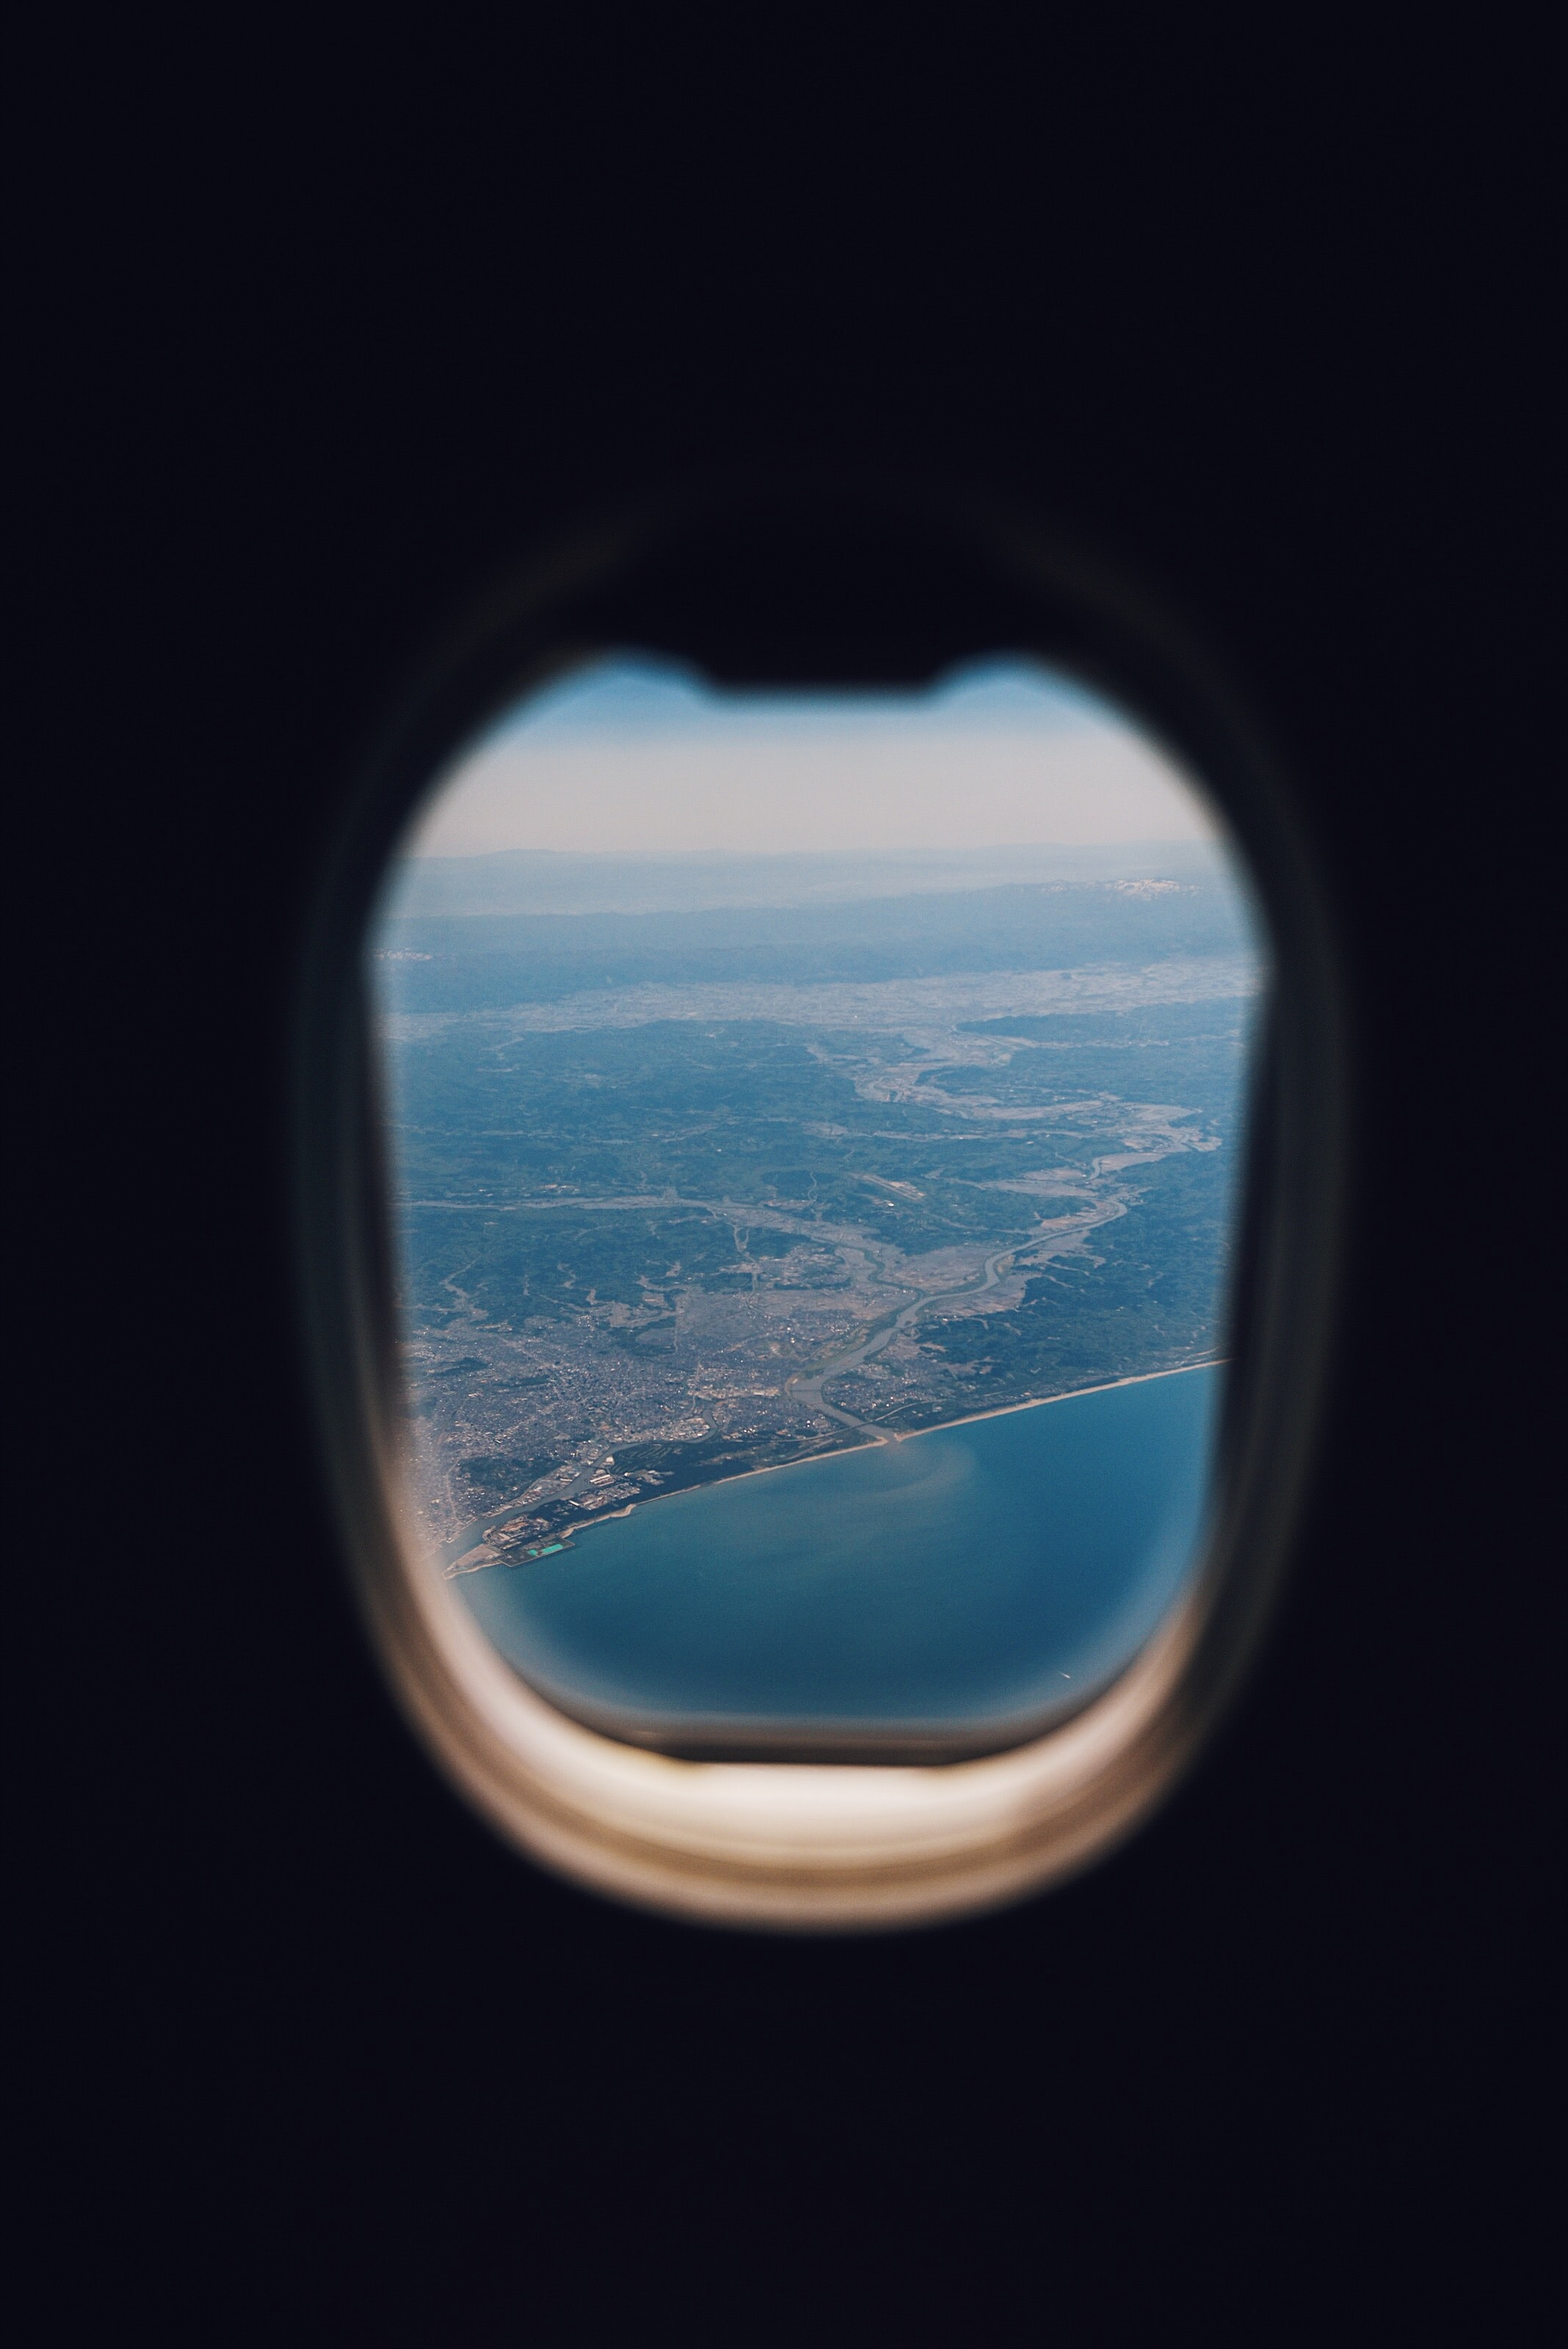 View of a coastline from the window of an airplane.